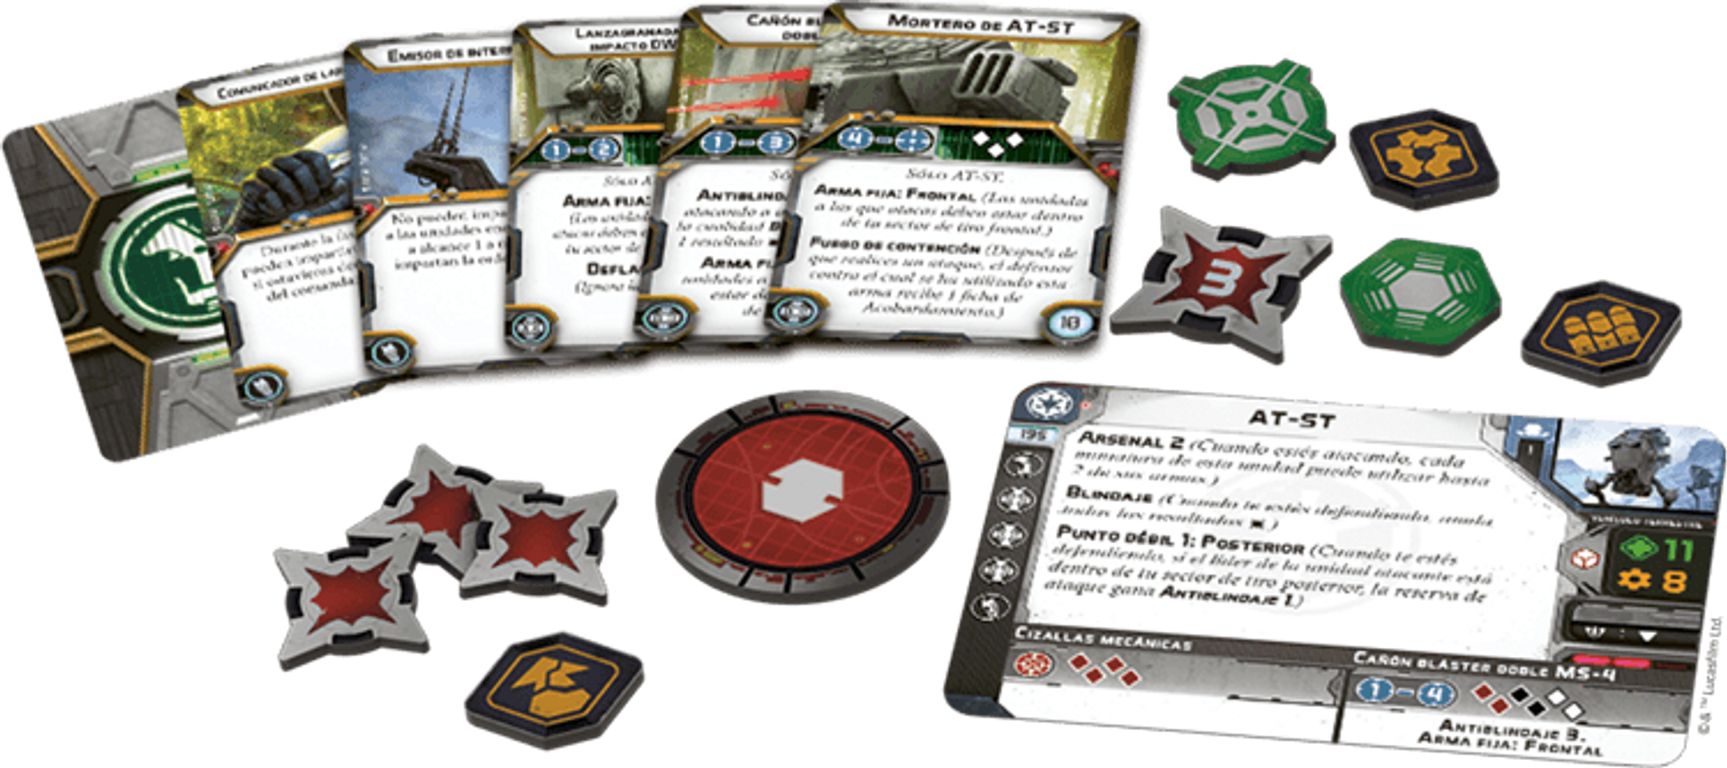 Star Wars: Legion - AT-ST Unit Expansion components